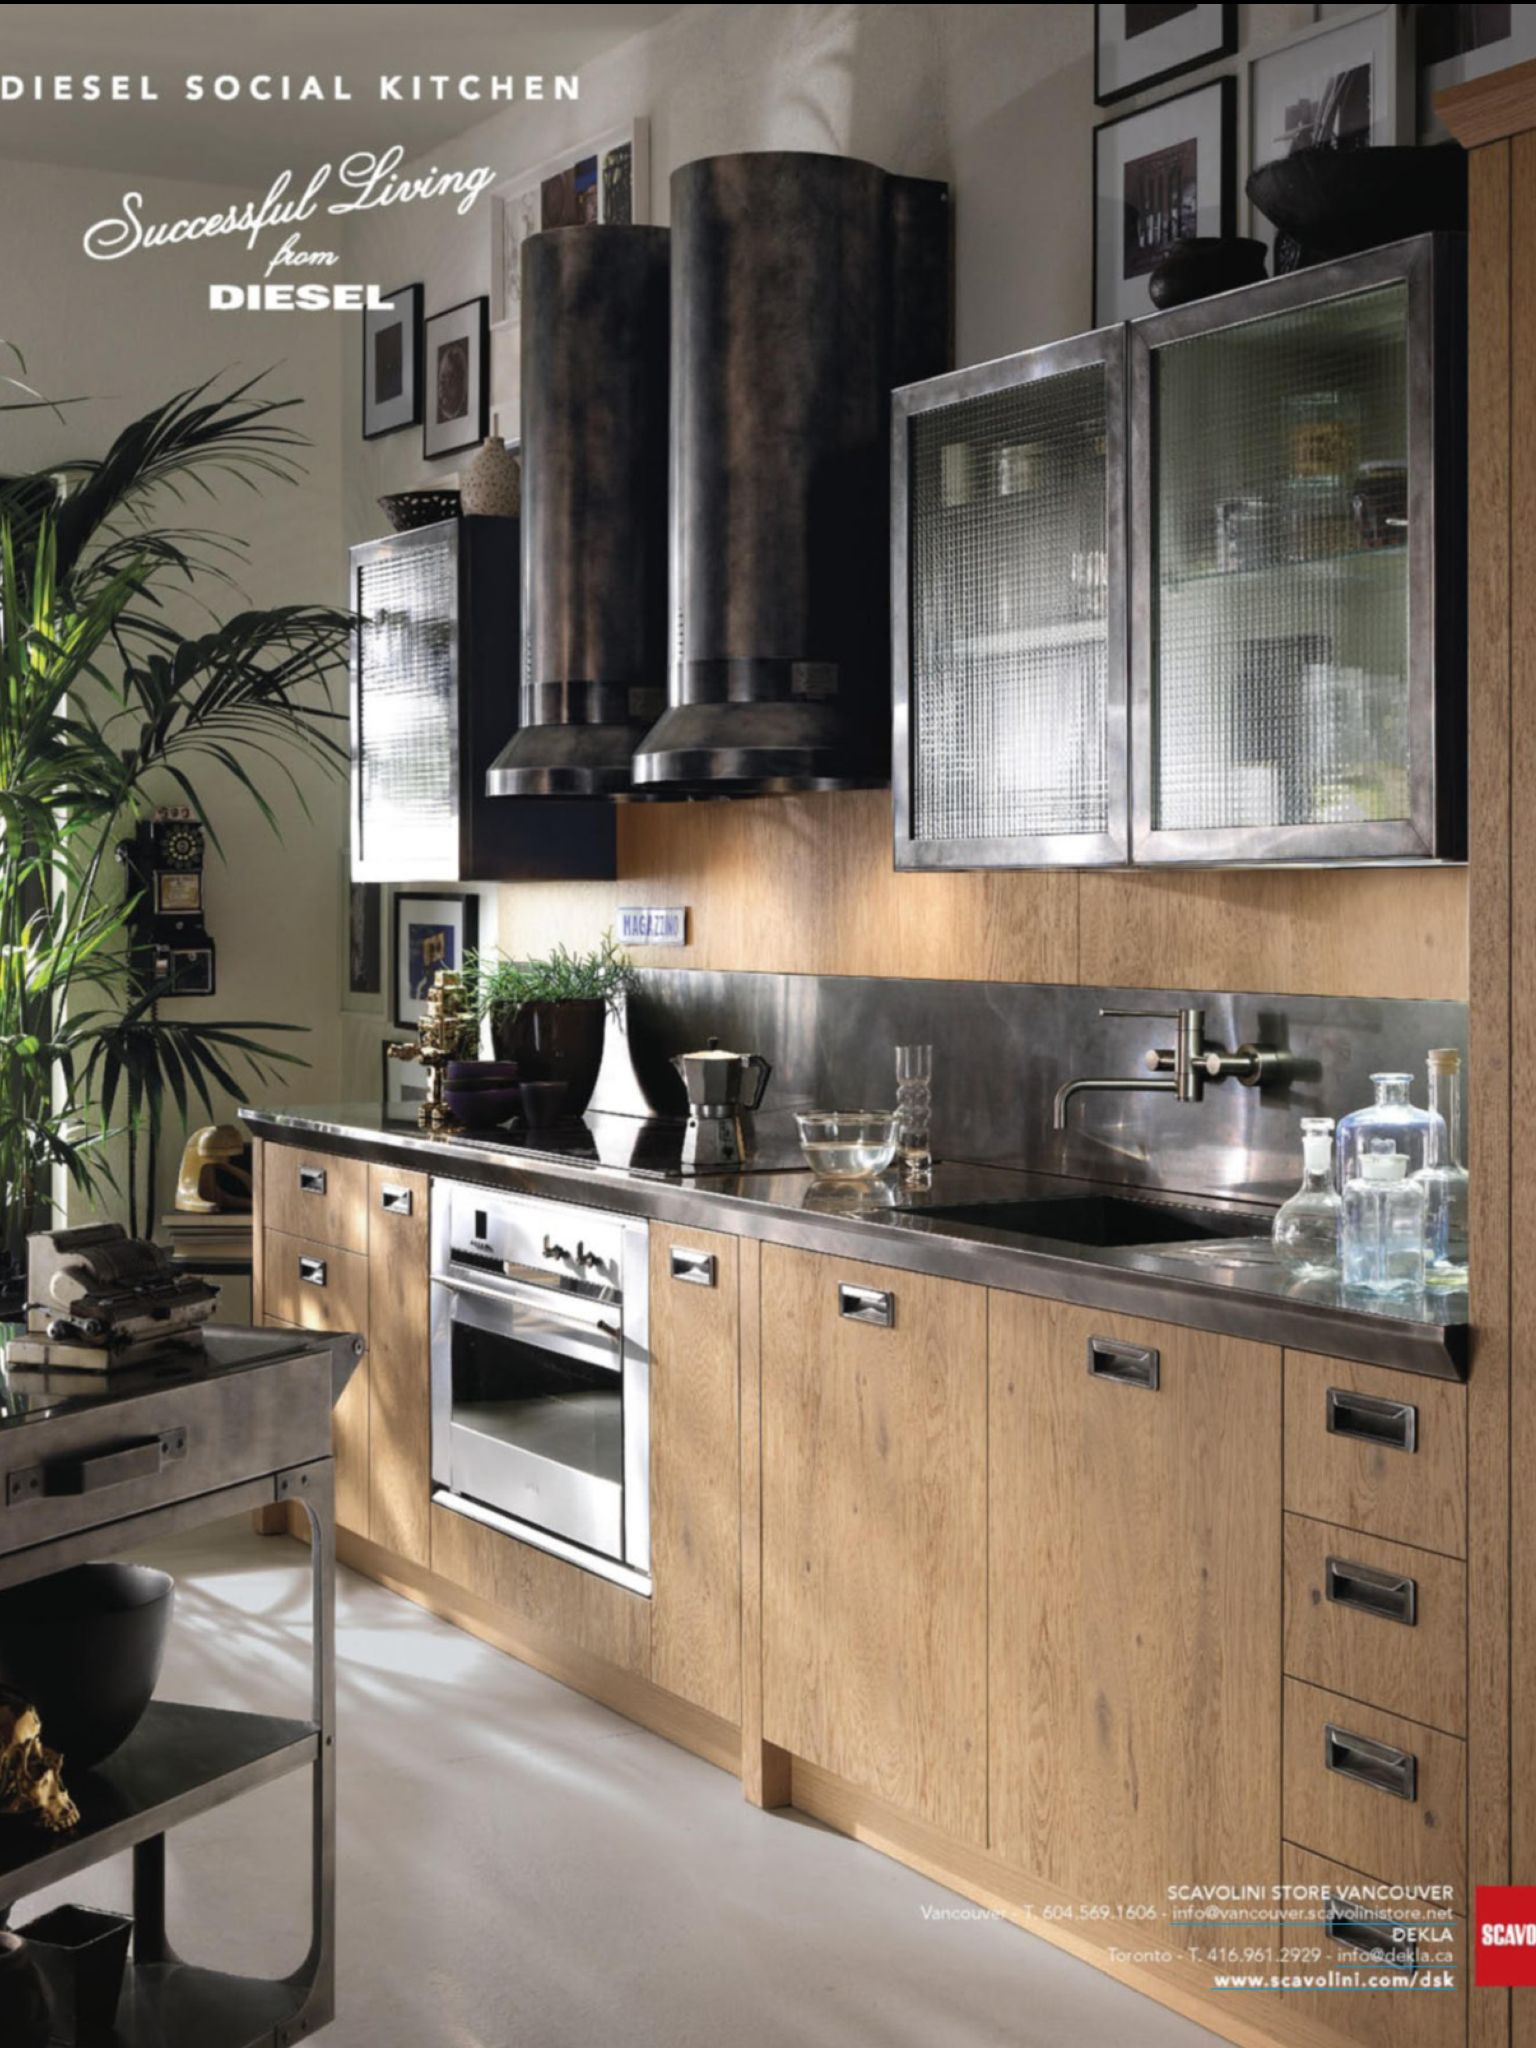 Scavolini Diesel kitchen | 3 | Residential | Kitchens | Pinterest ...